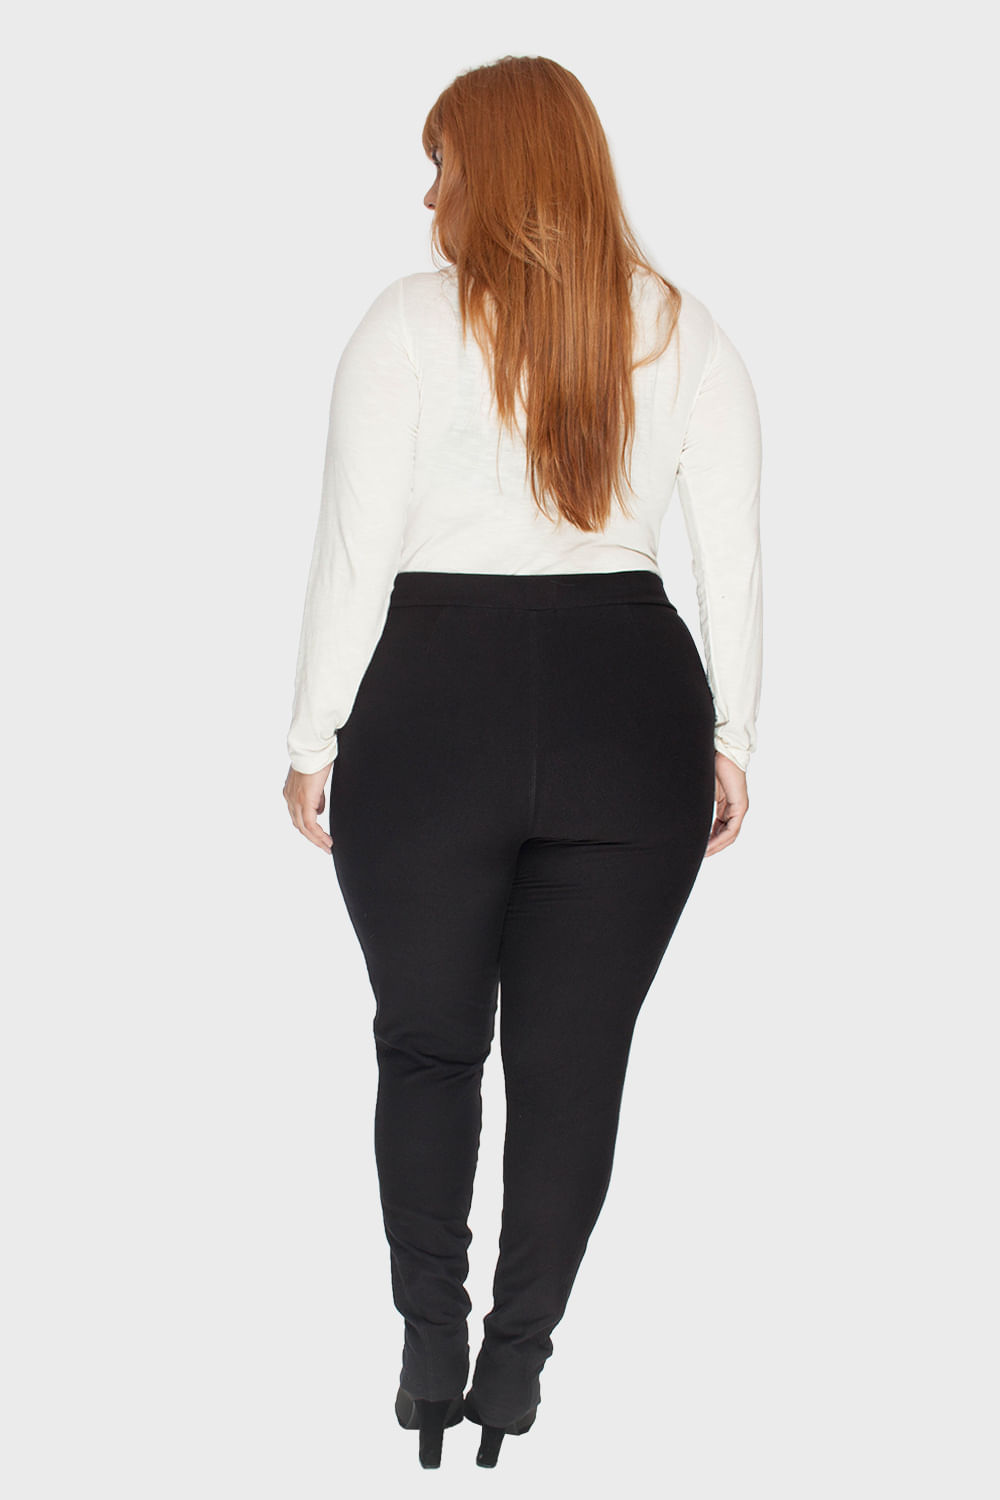 Calca-Molecotton-com-Botao-Plus-Size_T1